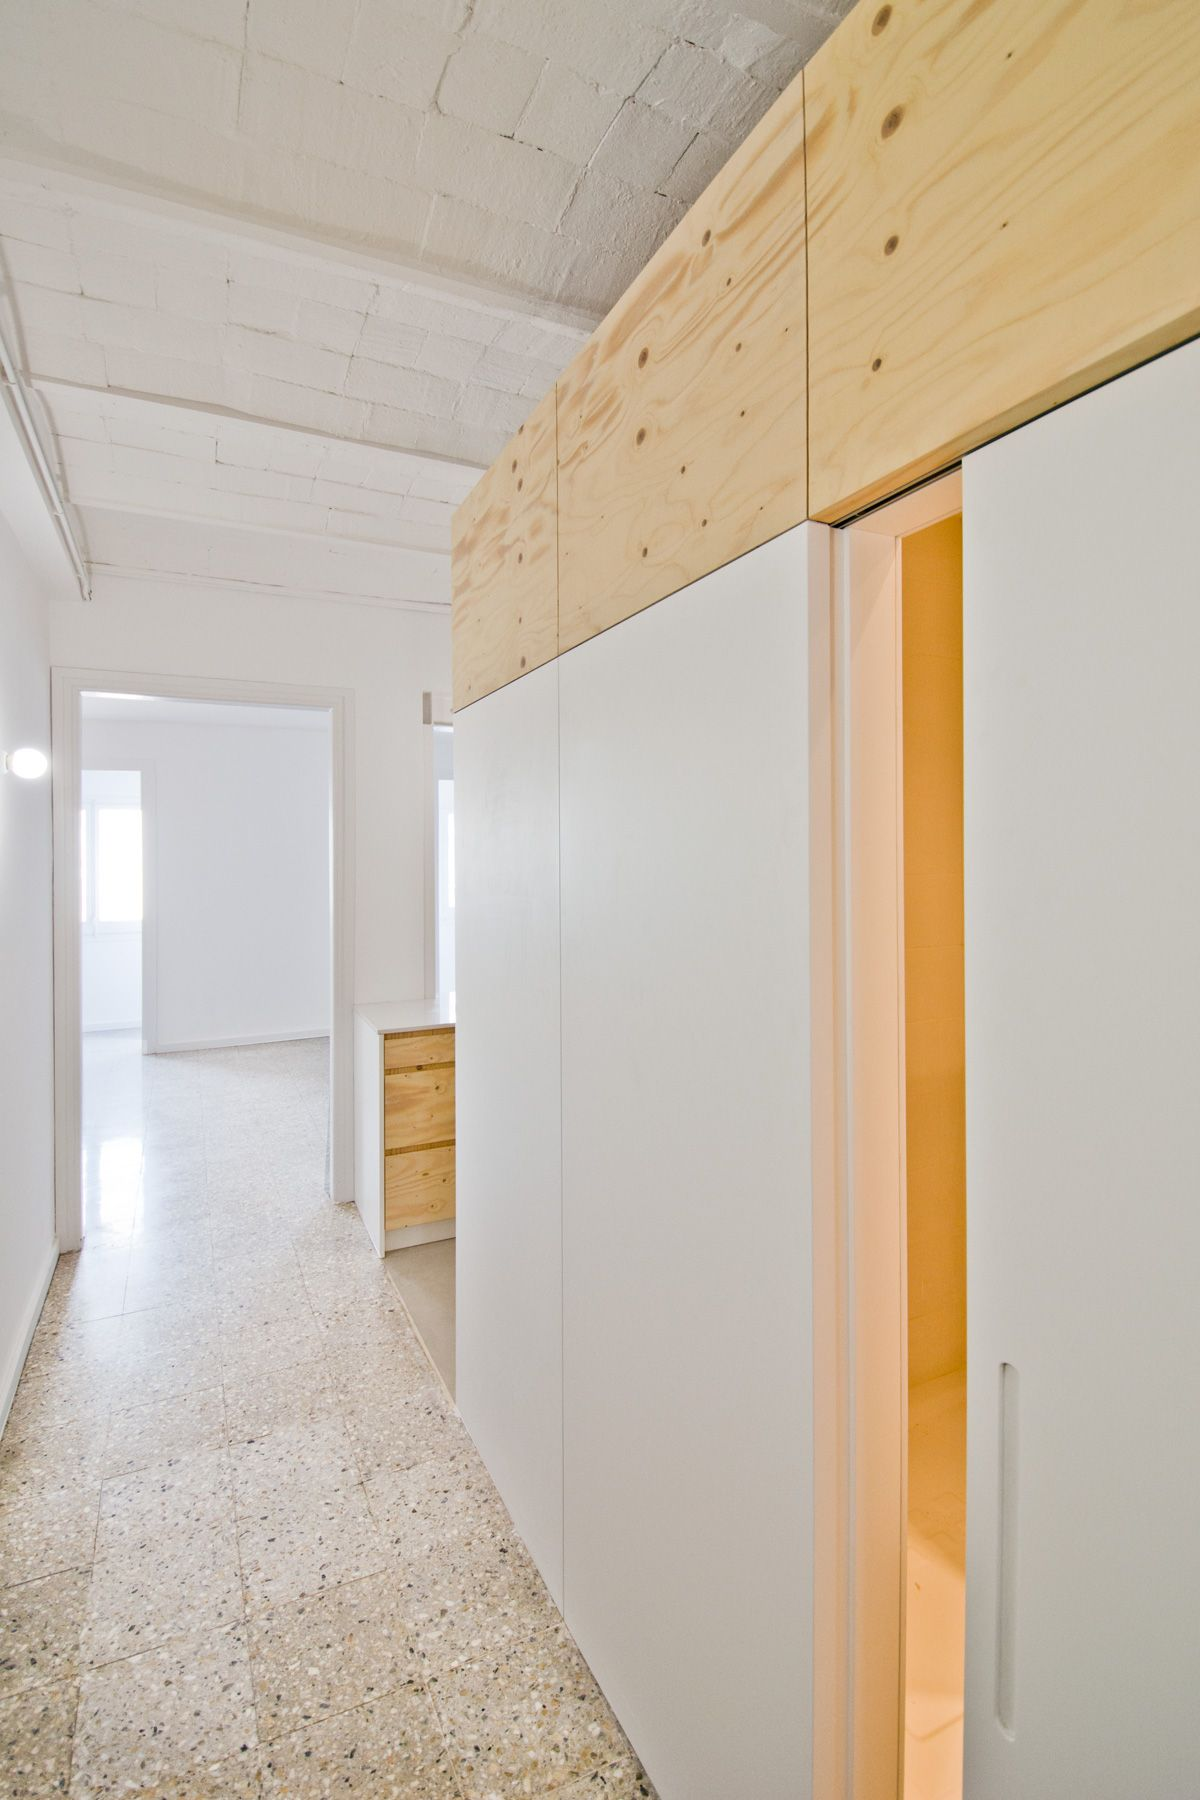 Carles Enrich - Apartment renovation in Casp